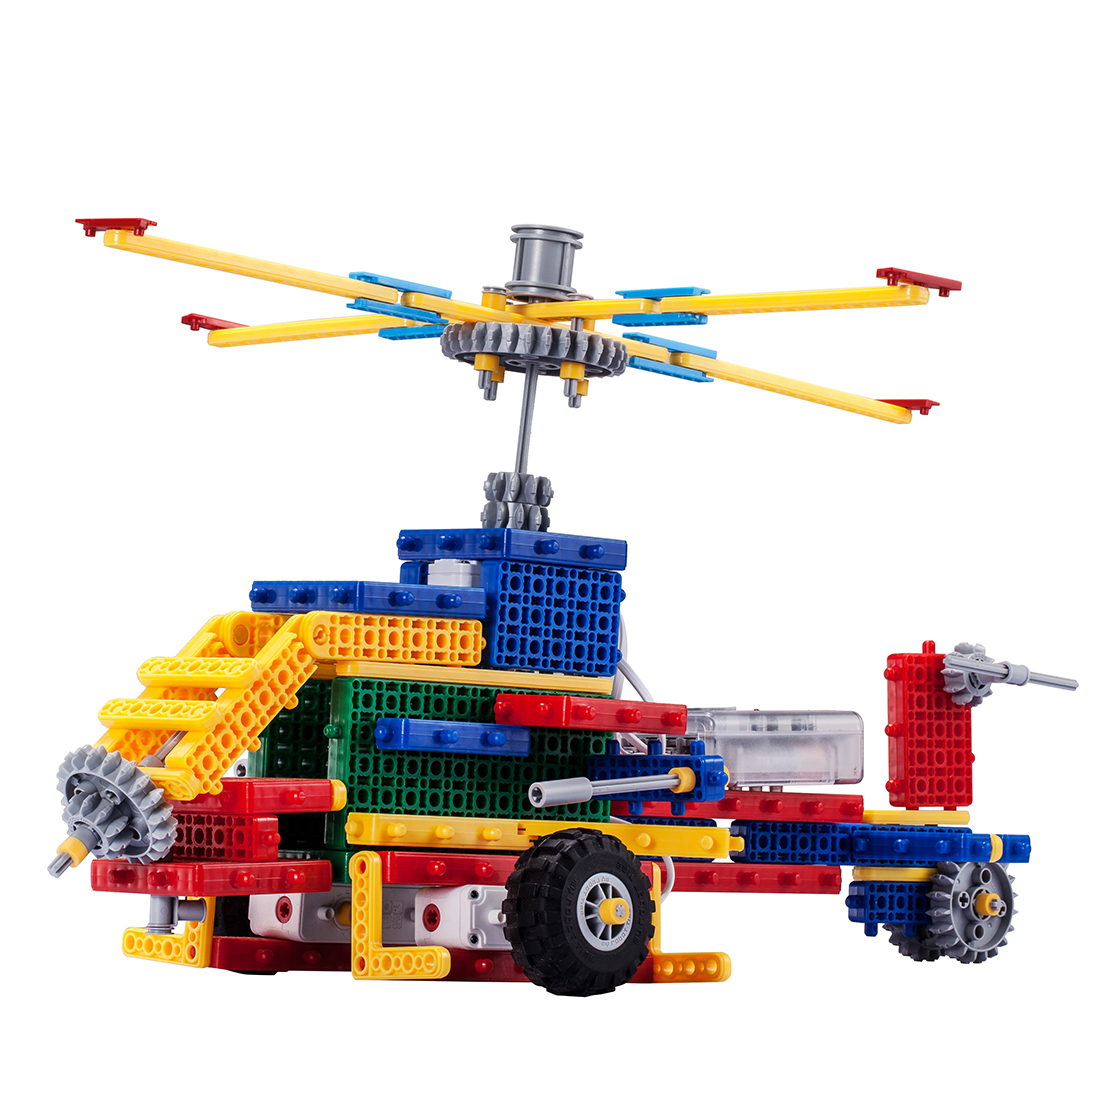 DIY Hand Made Science MRT 1-Brain FK Colorful Robots Bulding Block Kit Assembly Educational Robot Toy For Beginner 6-8 Years Old